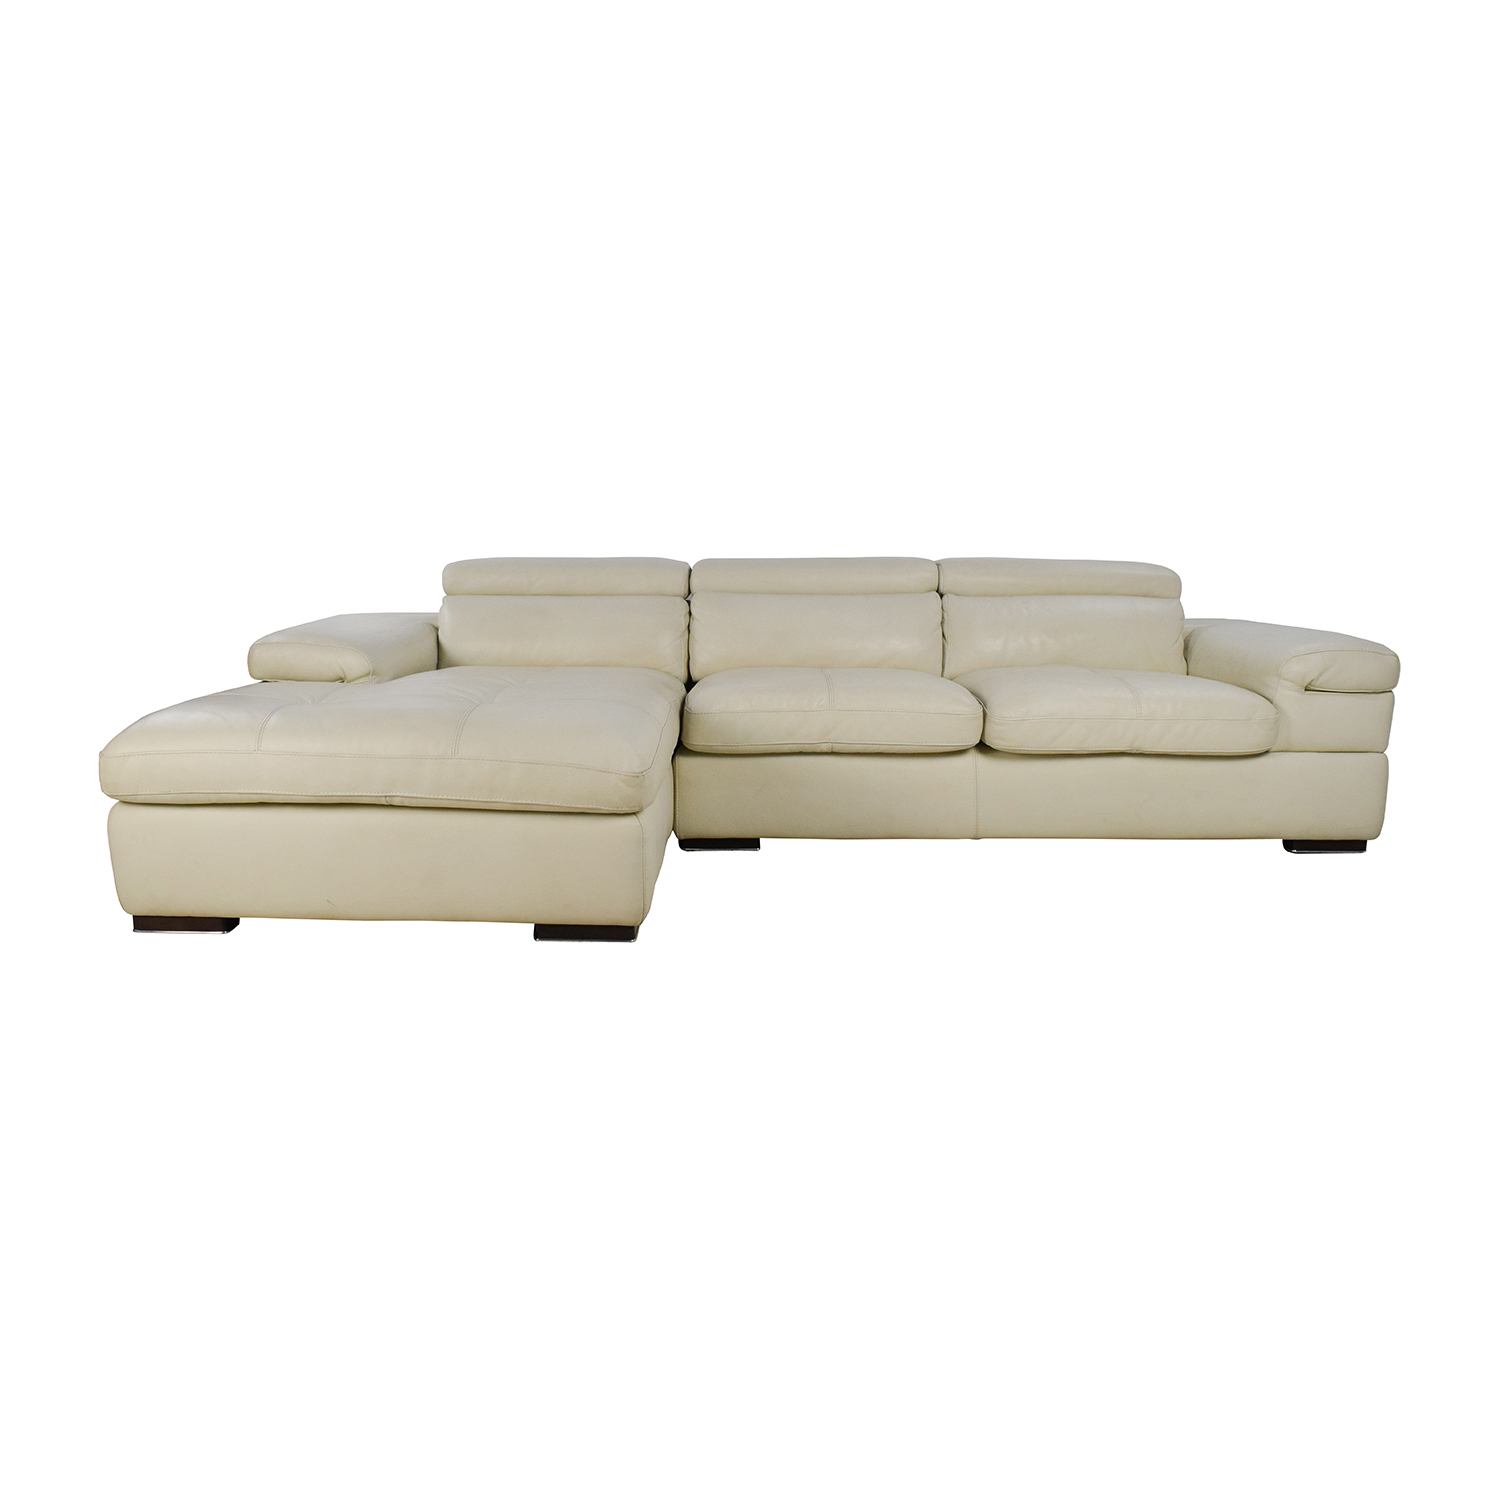 L-Shaped Cream Leather Sectional Sofa nyc